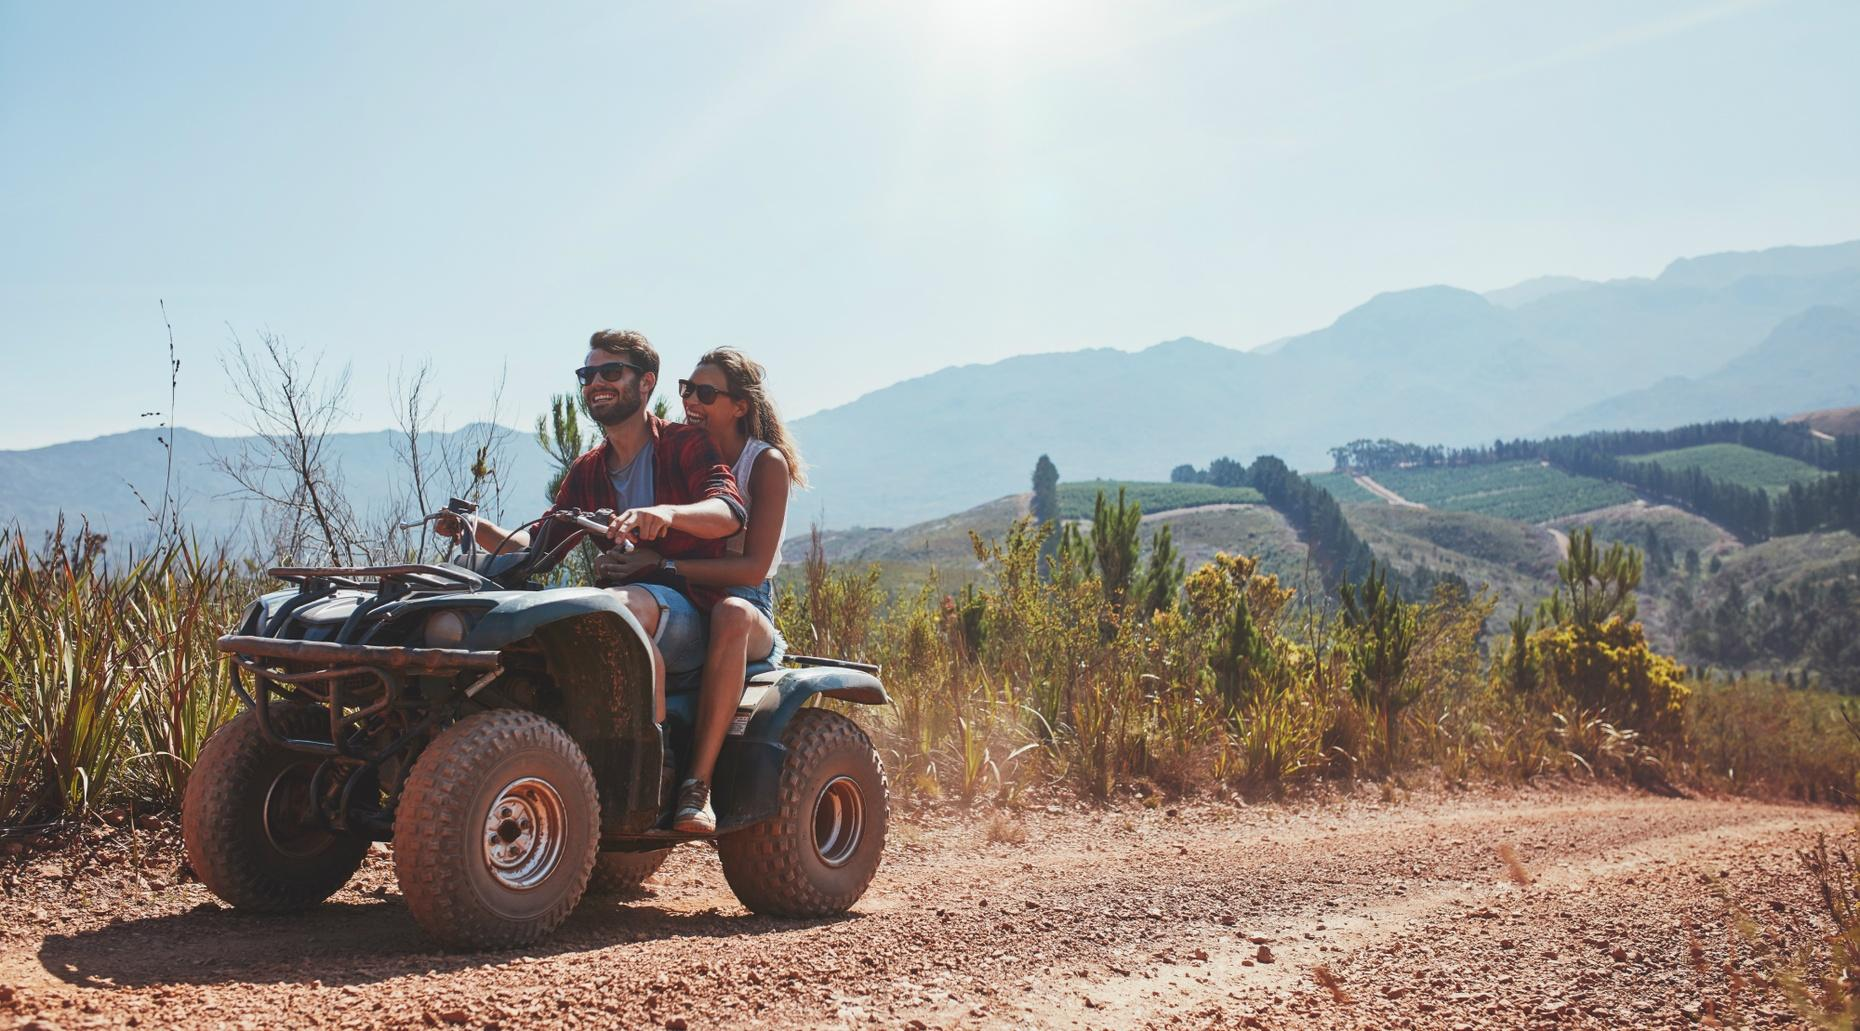 ATV Off-Road Adventure from Guanajuato